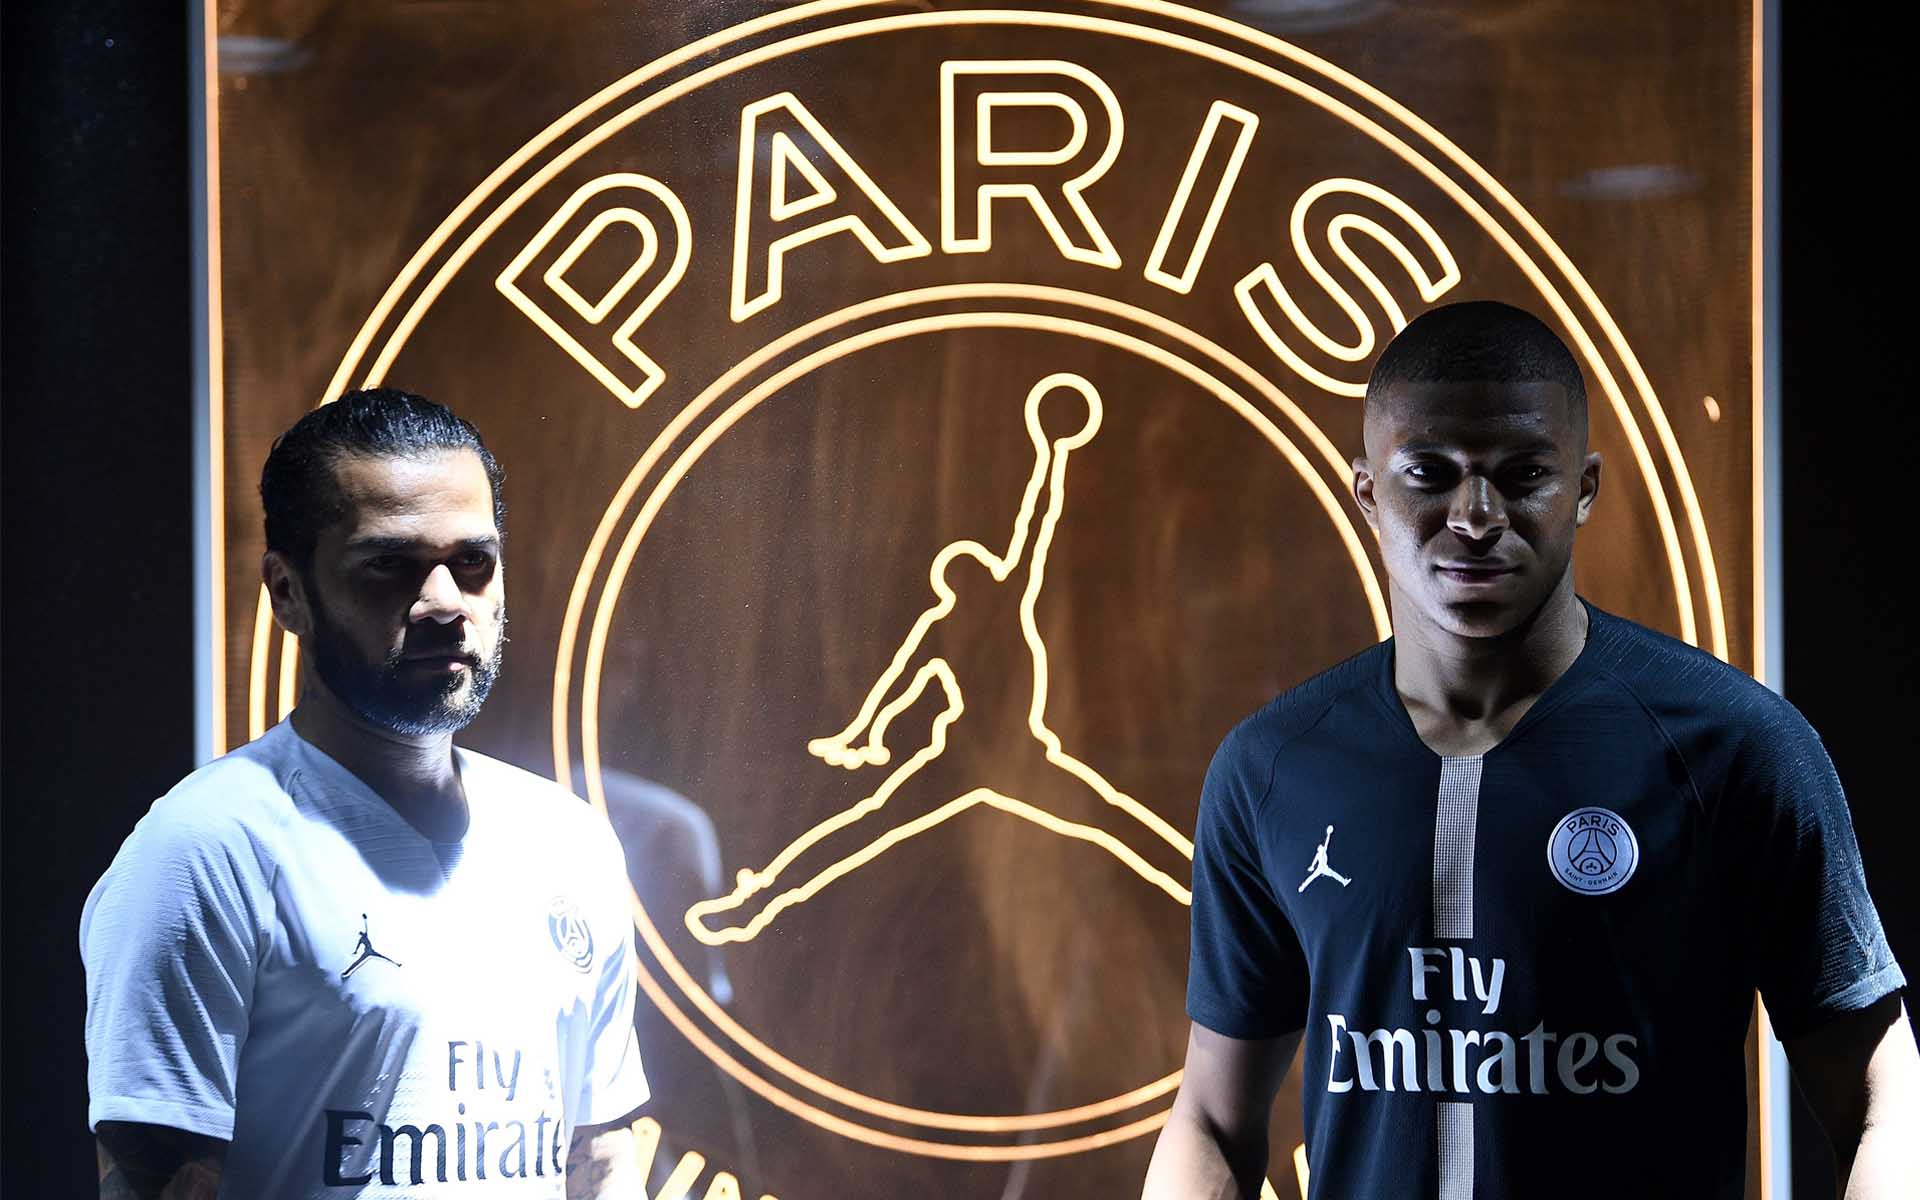 4b18e164d74 Primarily providing the team with its Champions League third kit, the PSG x  Jordan collection has since expanded to a full lifestyle collection that  sits ...